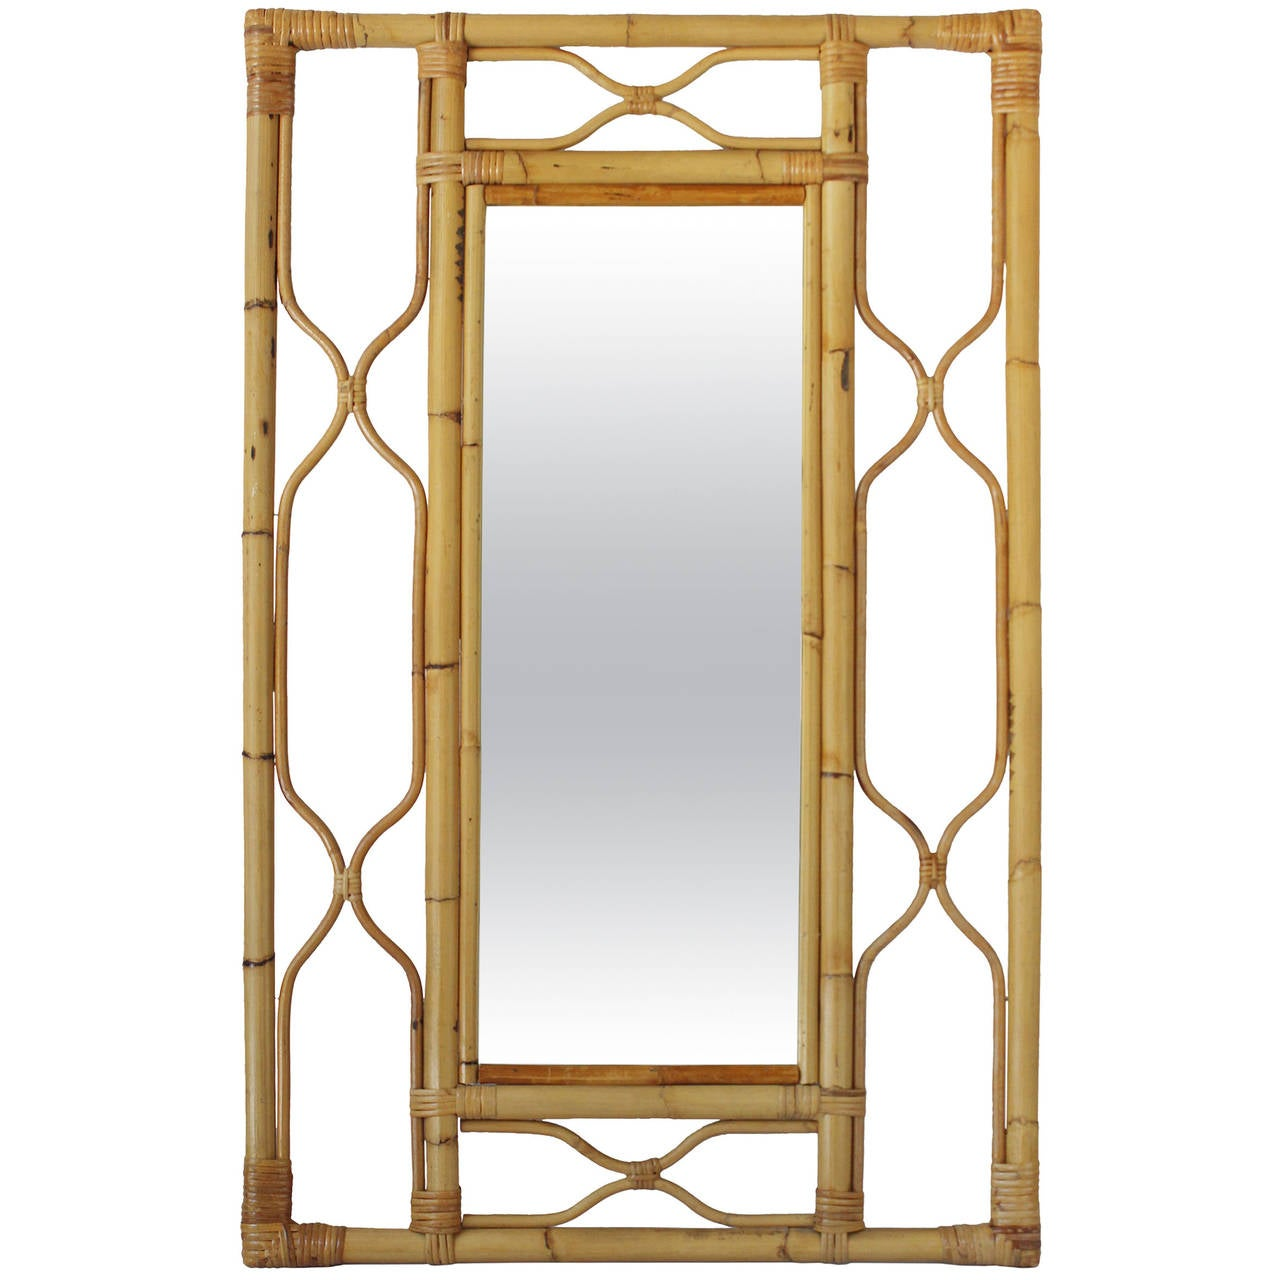 Bamboo frame mirror at 1stdibs for Mirror with mirror border